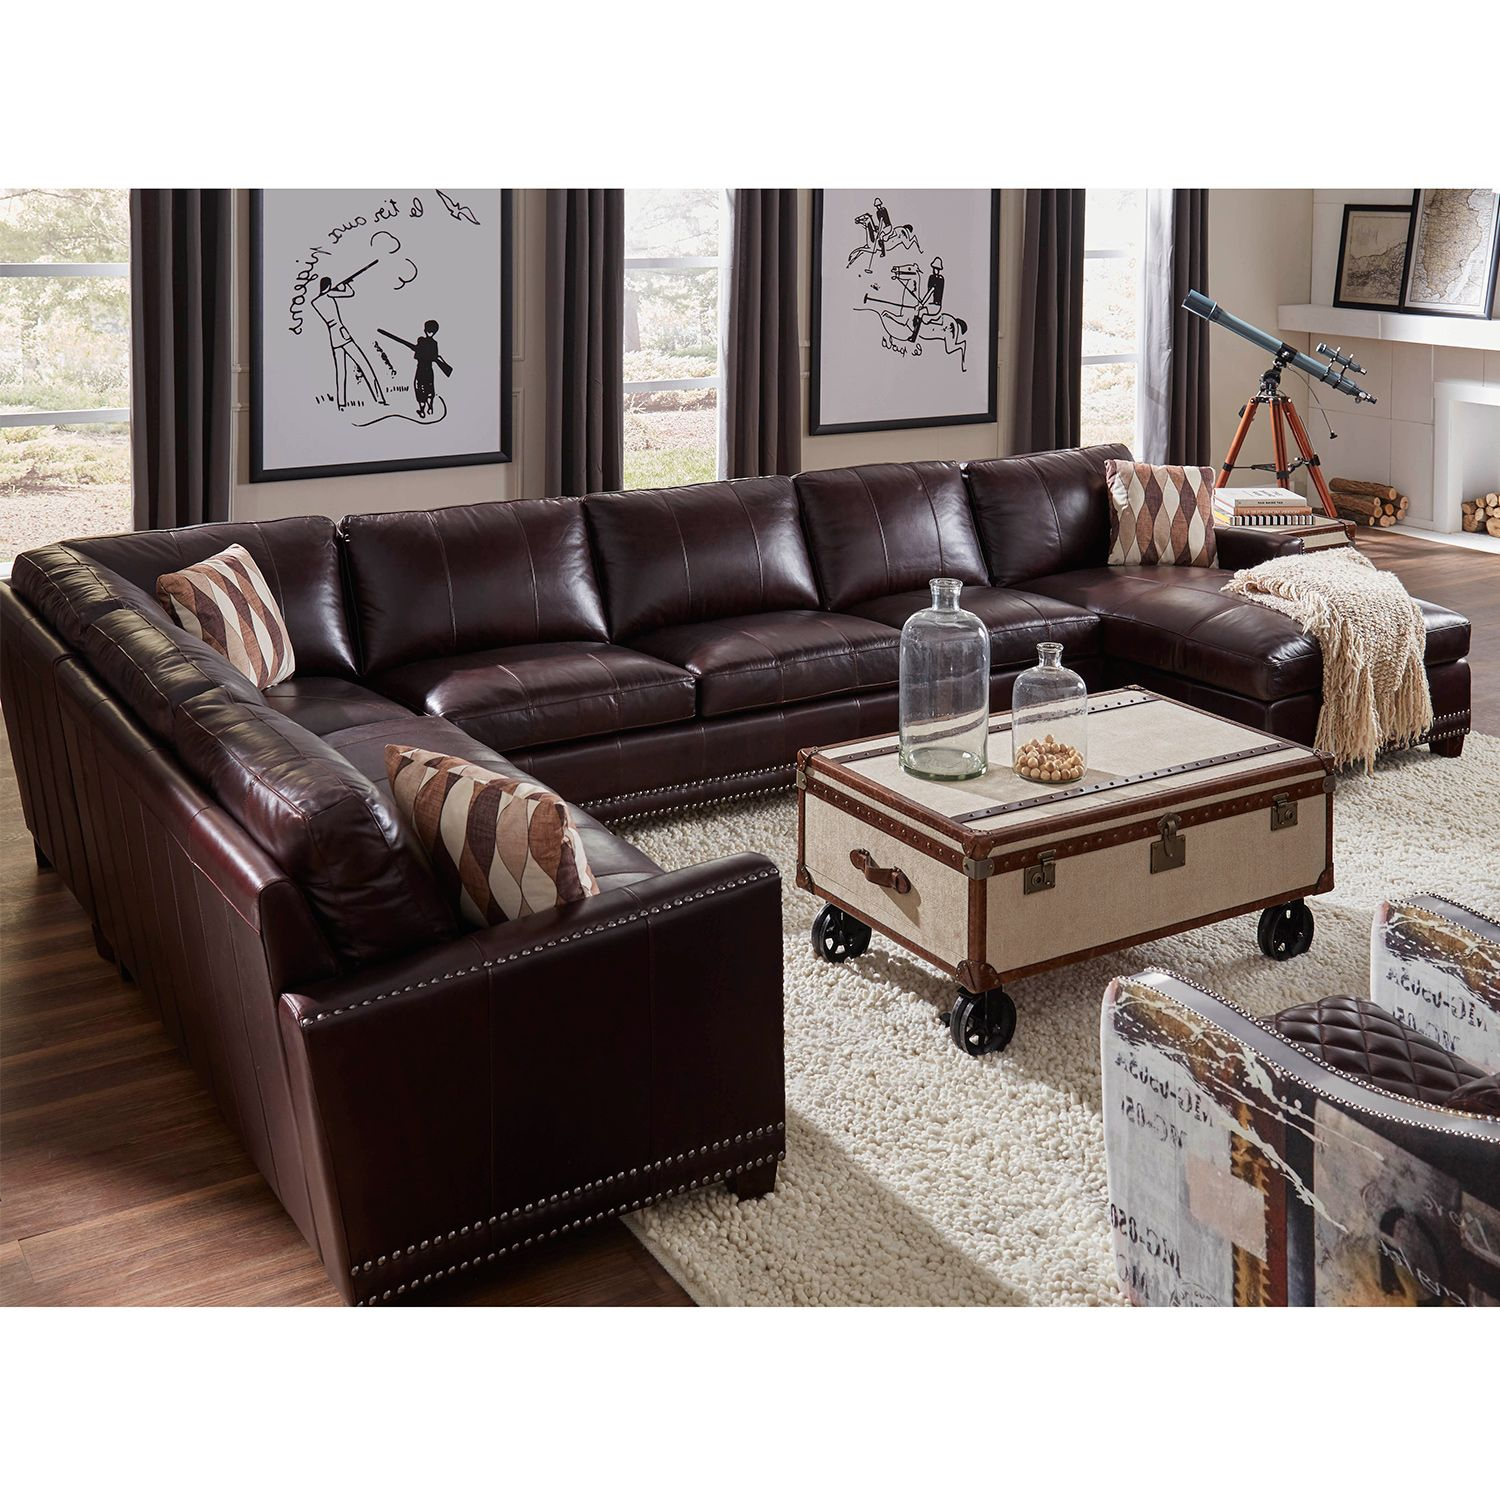 Lazzaro Furniture Bozeman Right Side Facing Chaise Sectional Sofa Dark  Chocolate Brown Vintage Leather